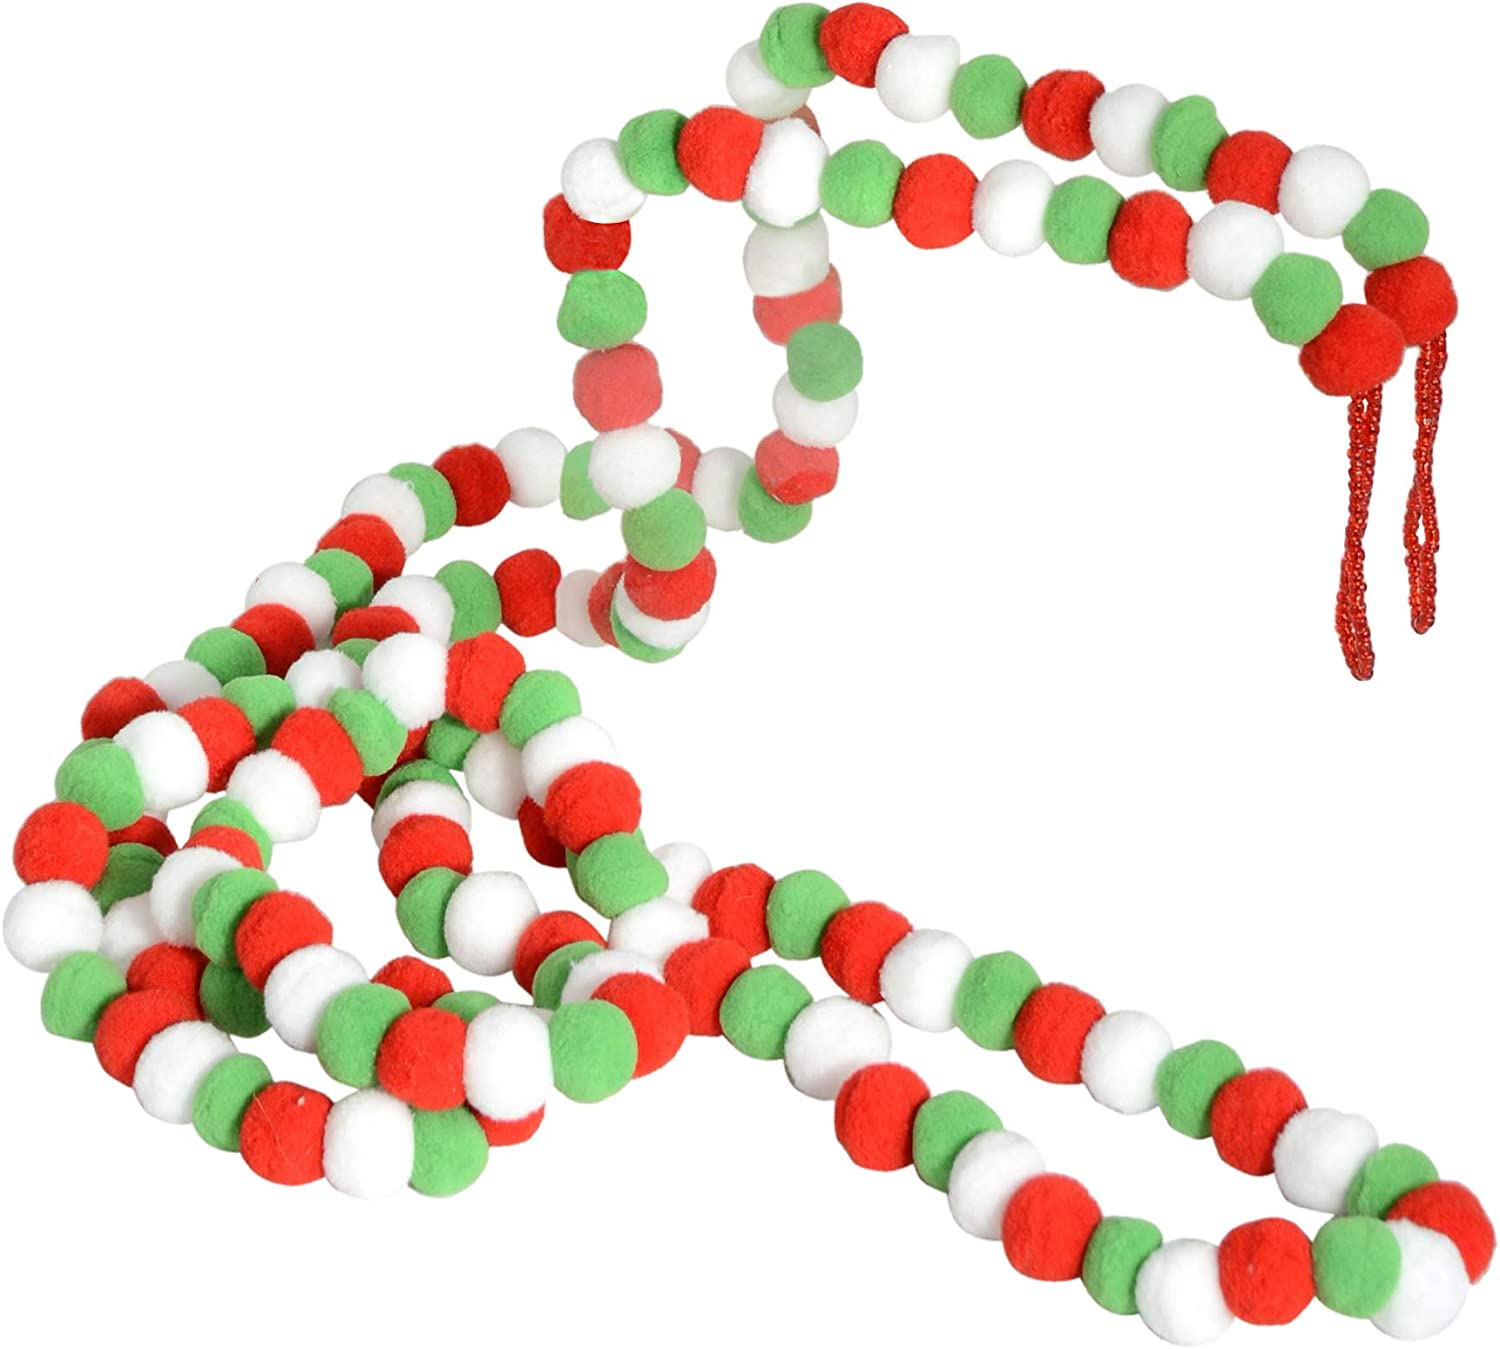 TenWaterloo 9 Foot Pom Pom Christmas Garland in Red 108 Inches Christmas and Holiday Decor Green and White with Beaded Hanging Loops